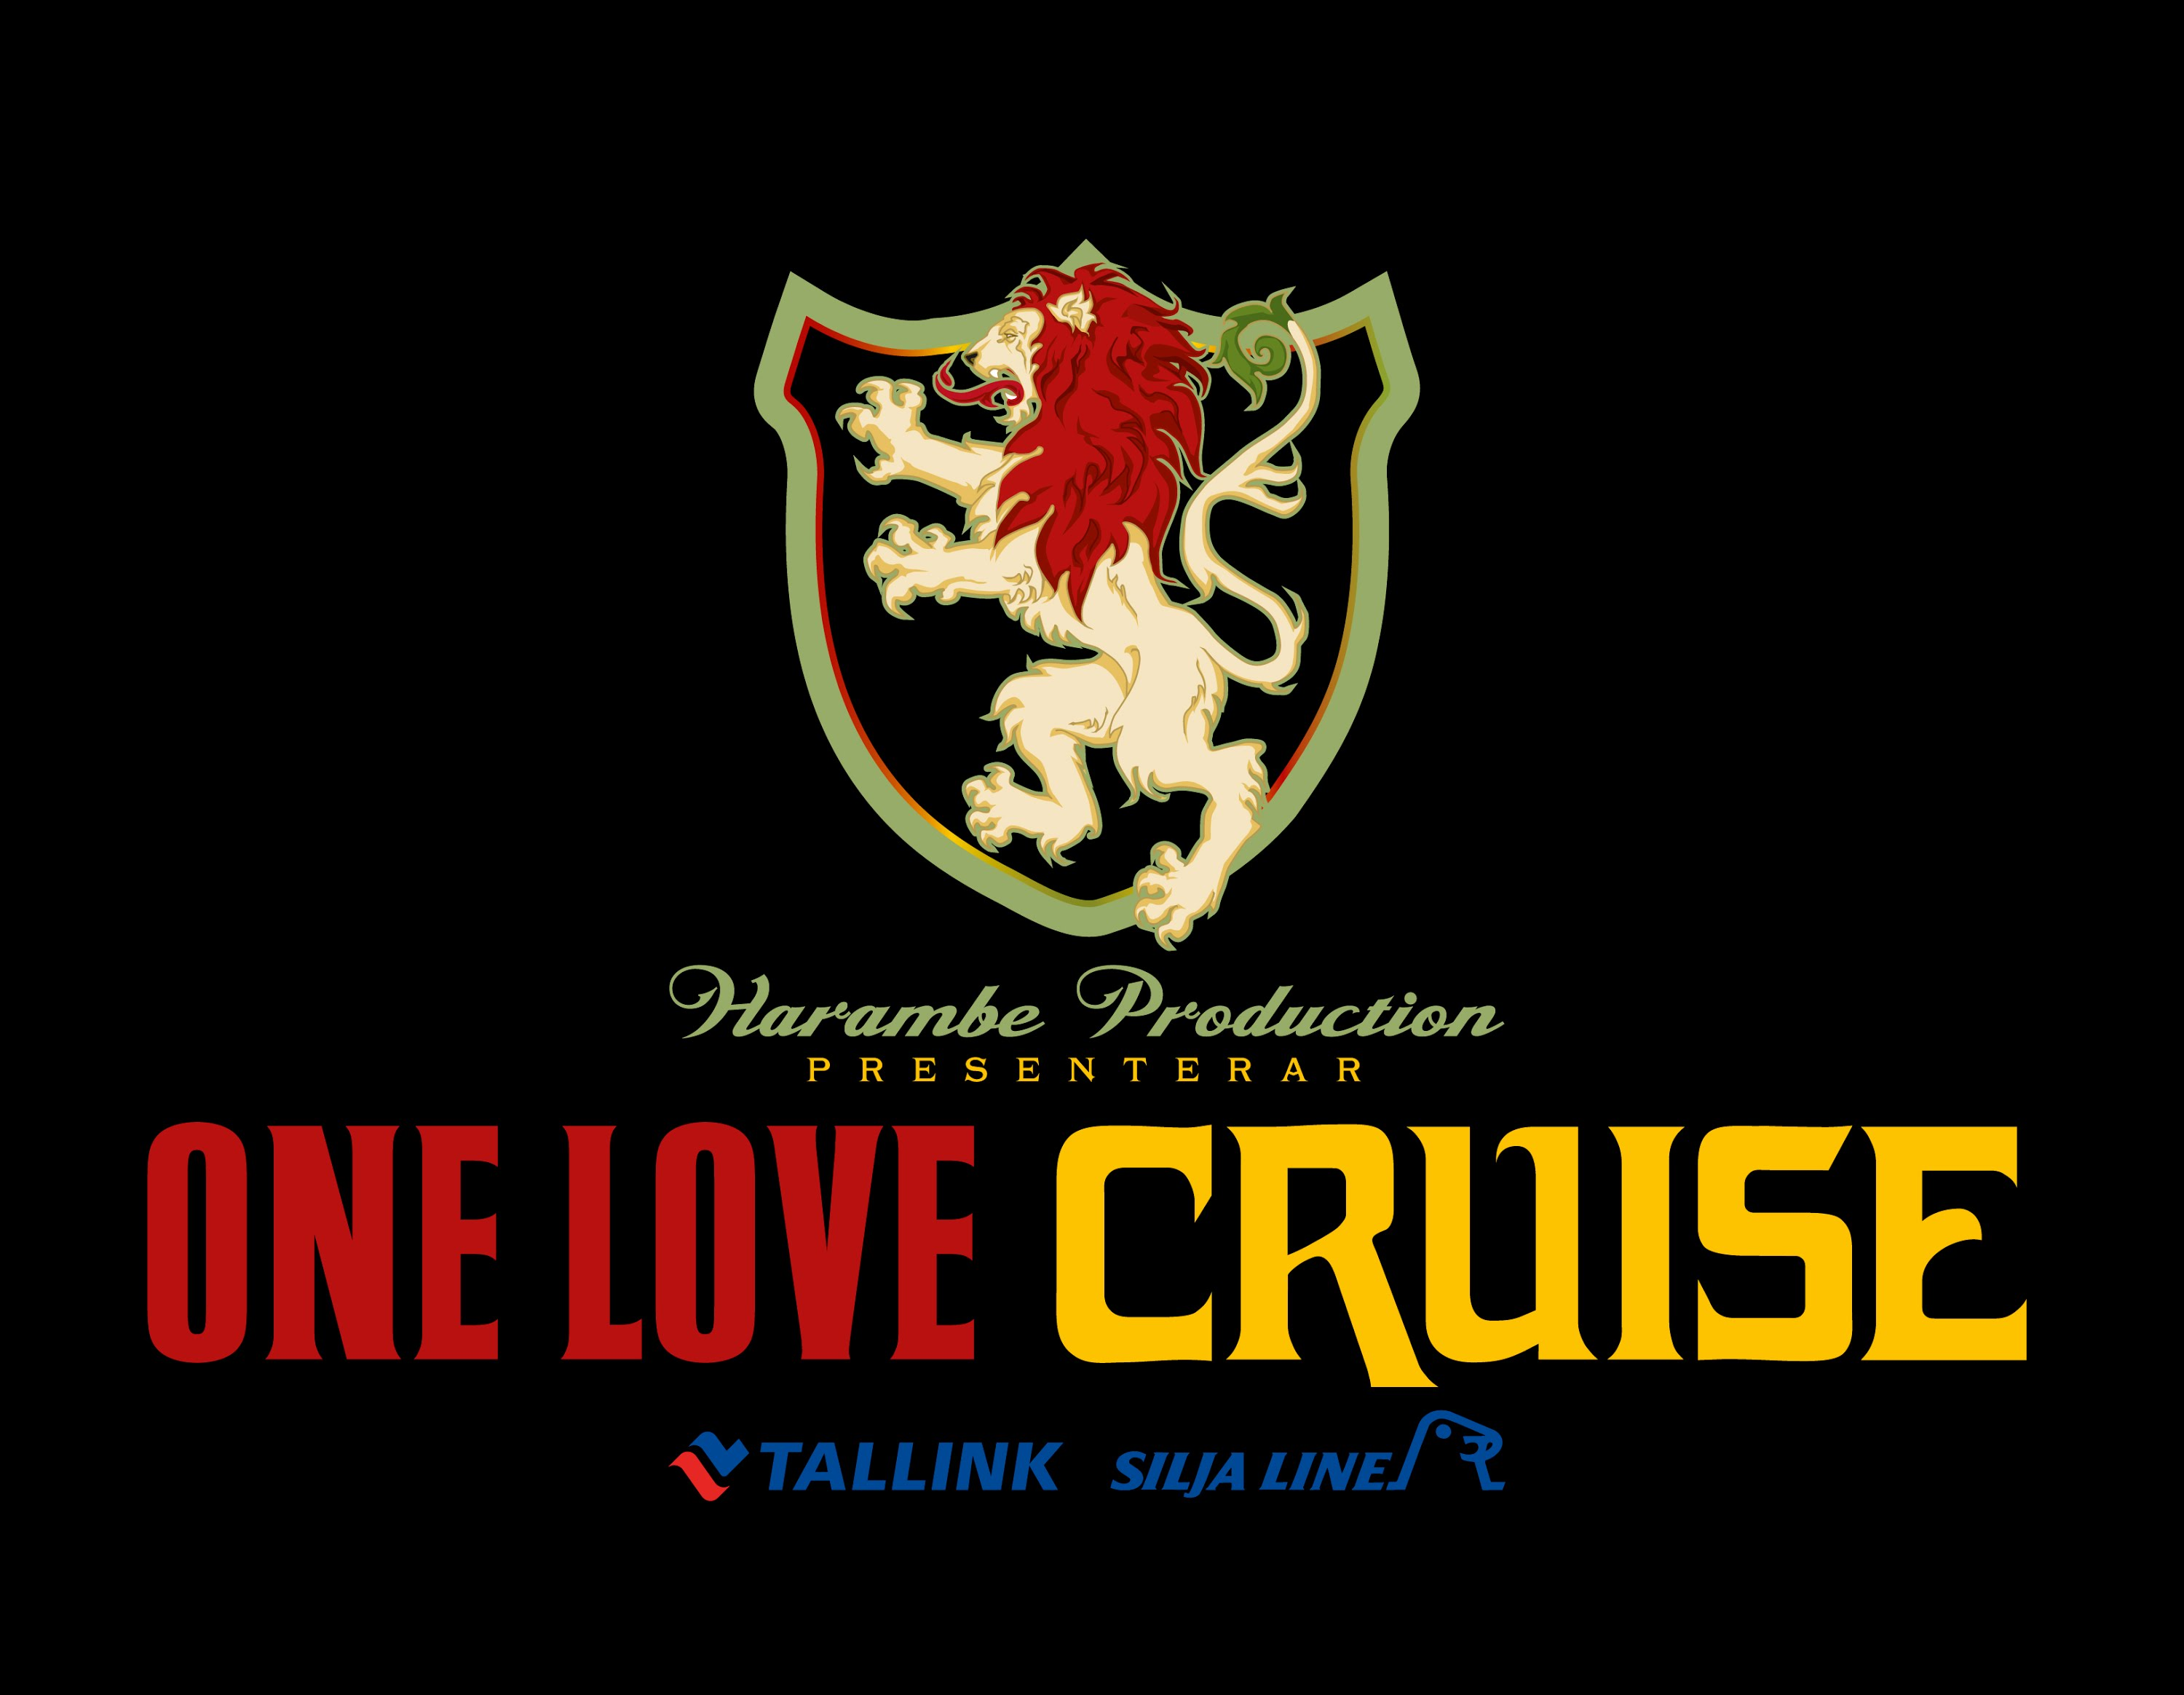 Jah Cure @ One Love Cruise 2015 - Sweden [6/5/2015]